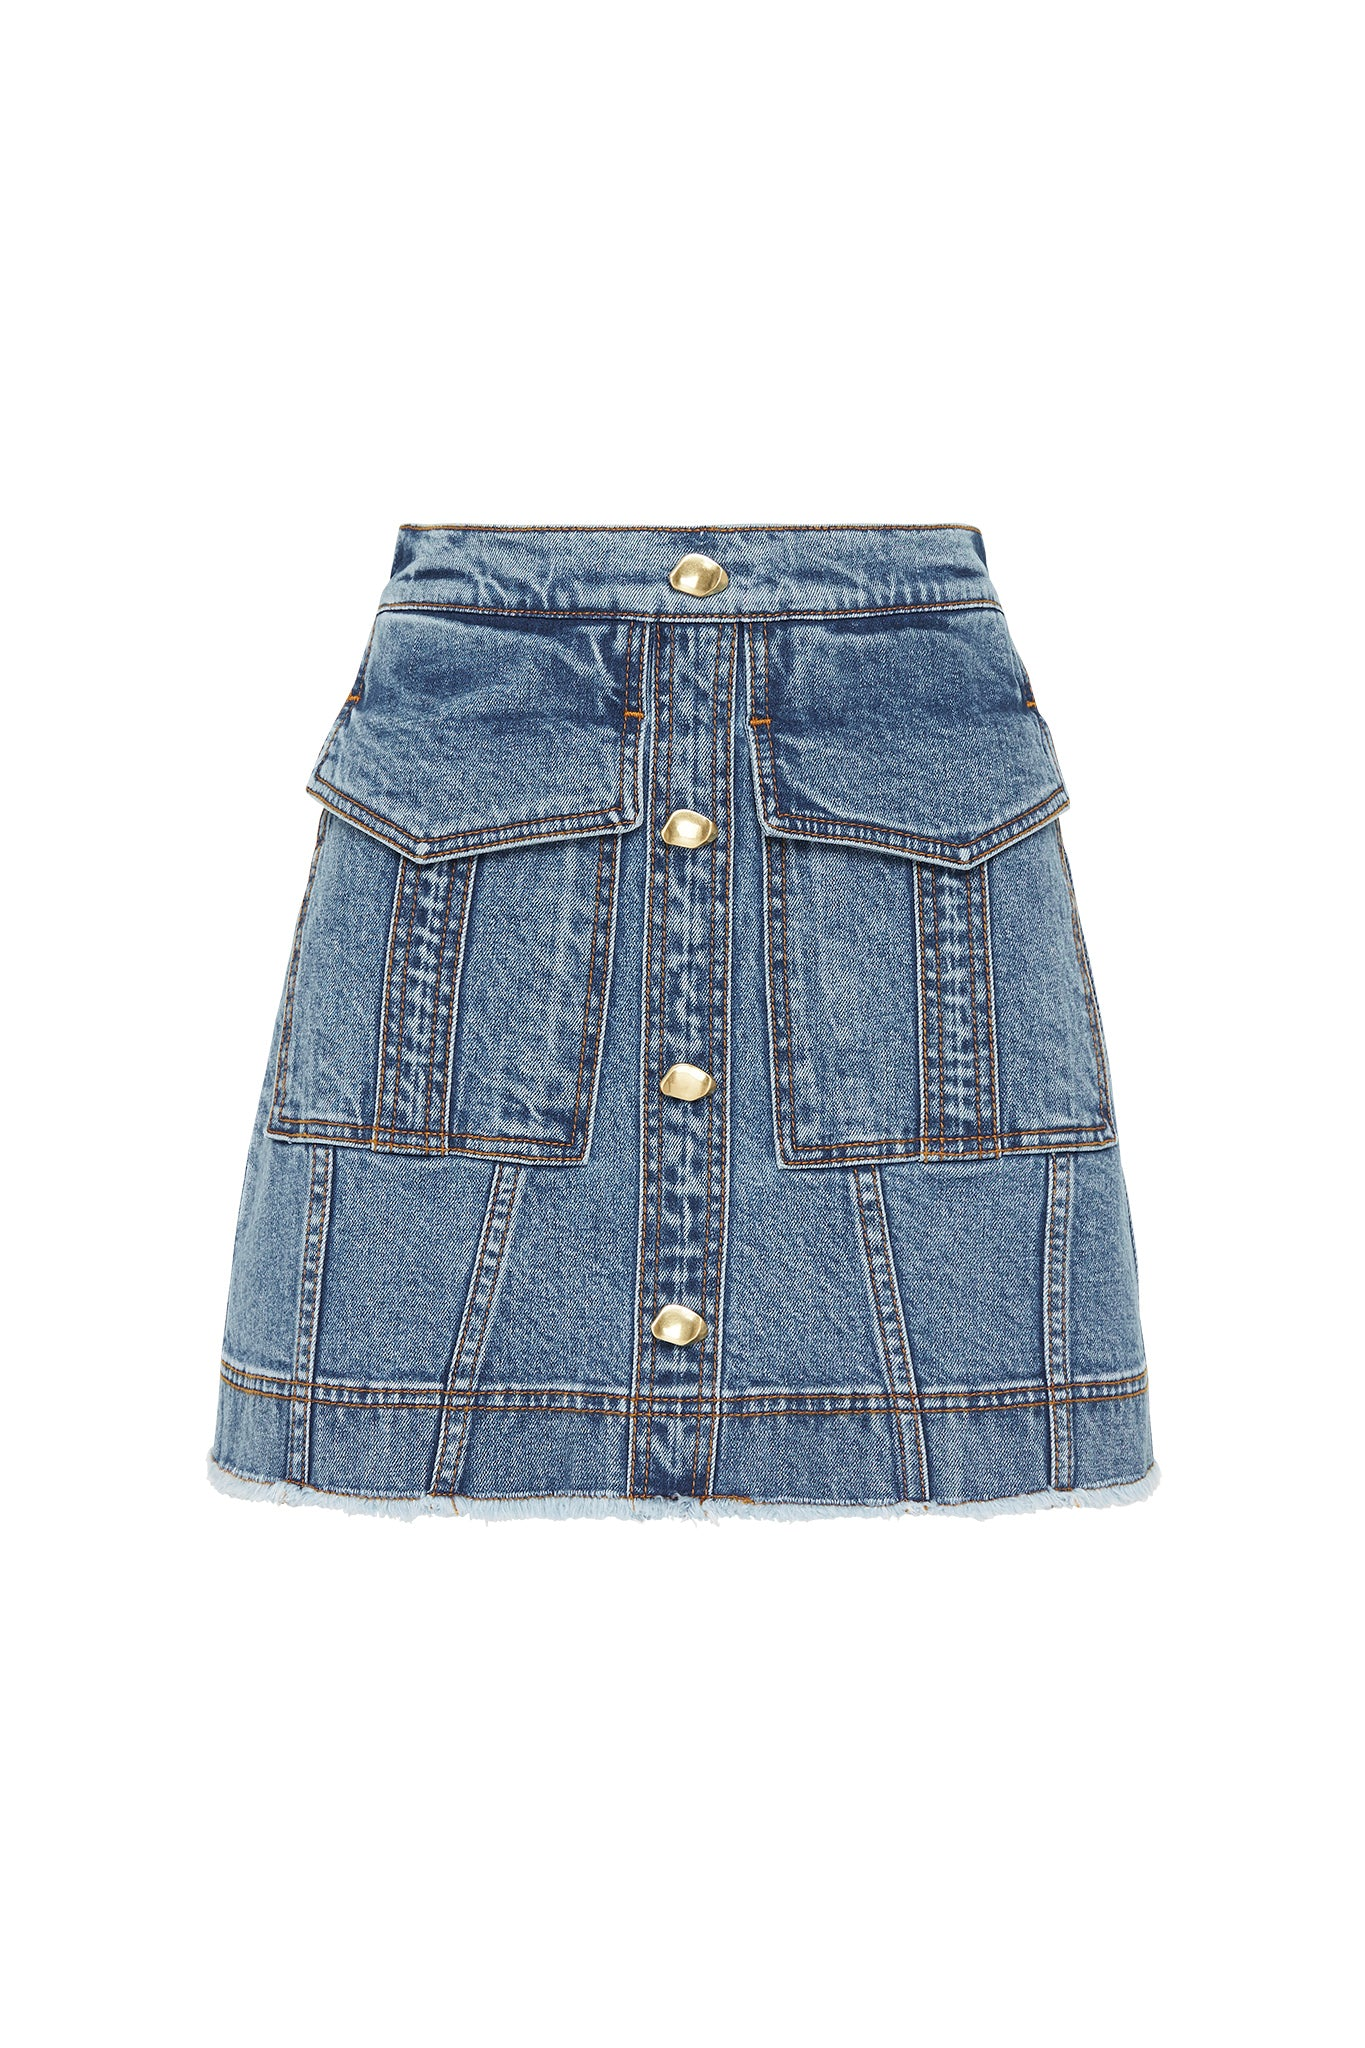 Mimosa Denim Pocket Skirt Product View